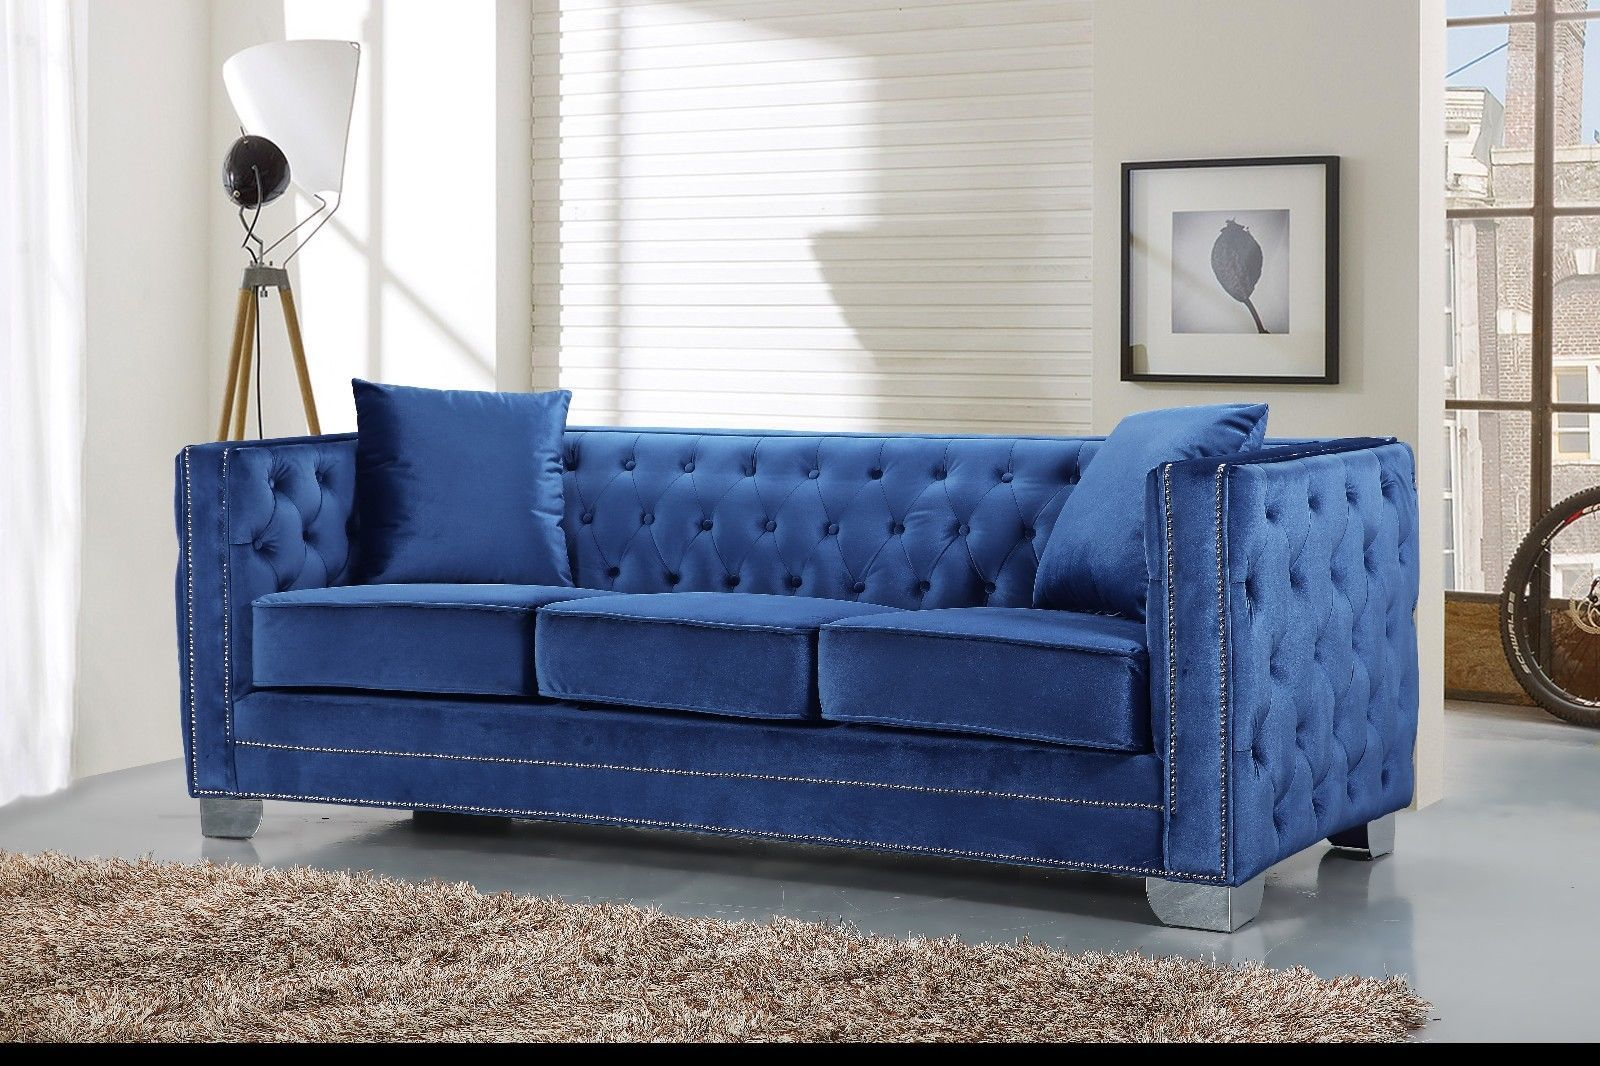 Meridian 648 Light Blue Velvet Living Room Sofa Chic Contemporary Style